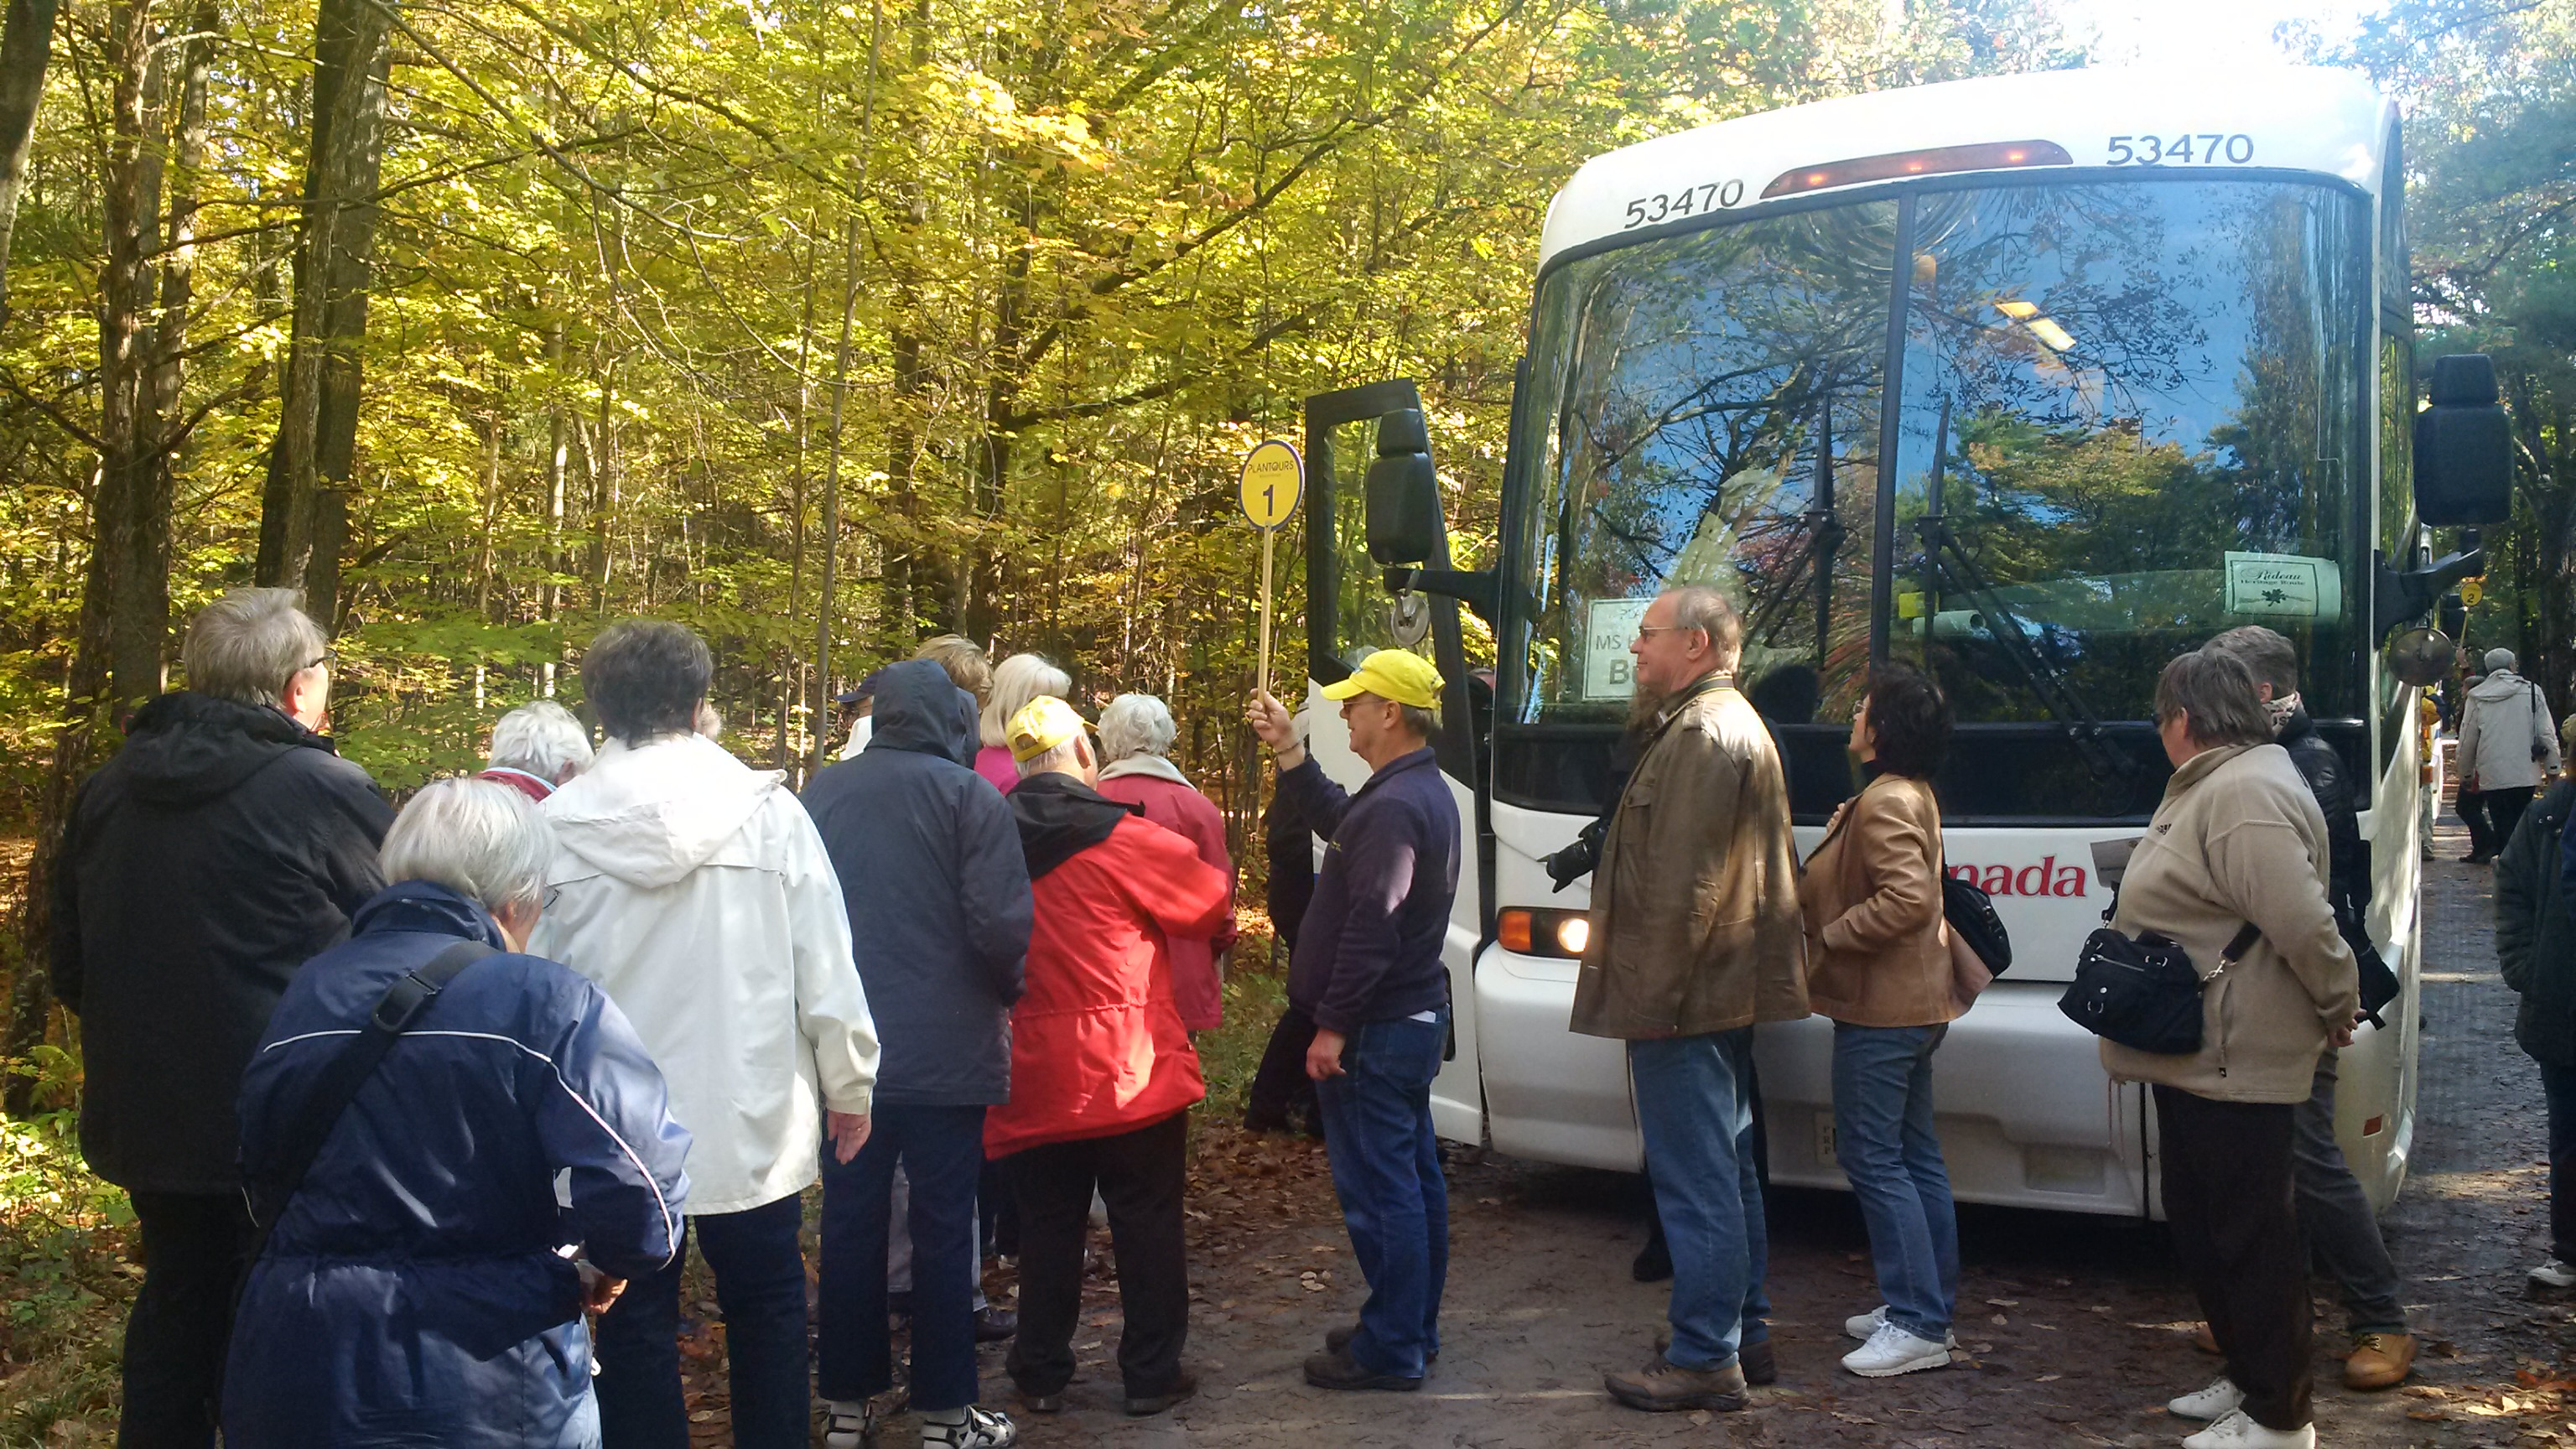 Image of people infront of a bus in the forest.